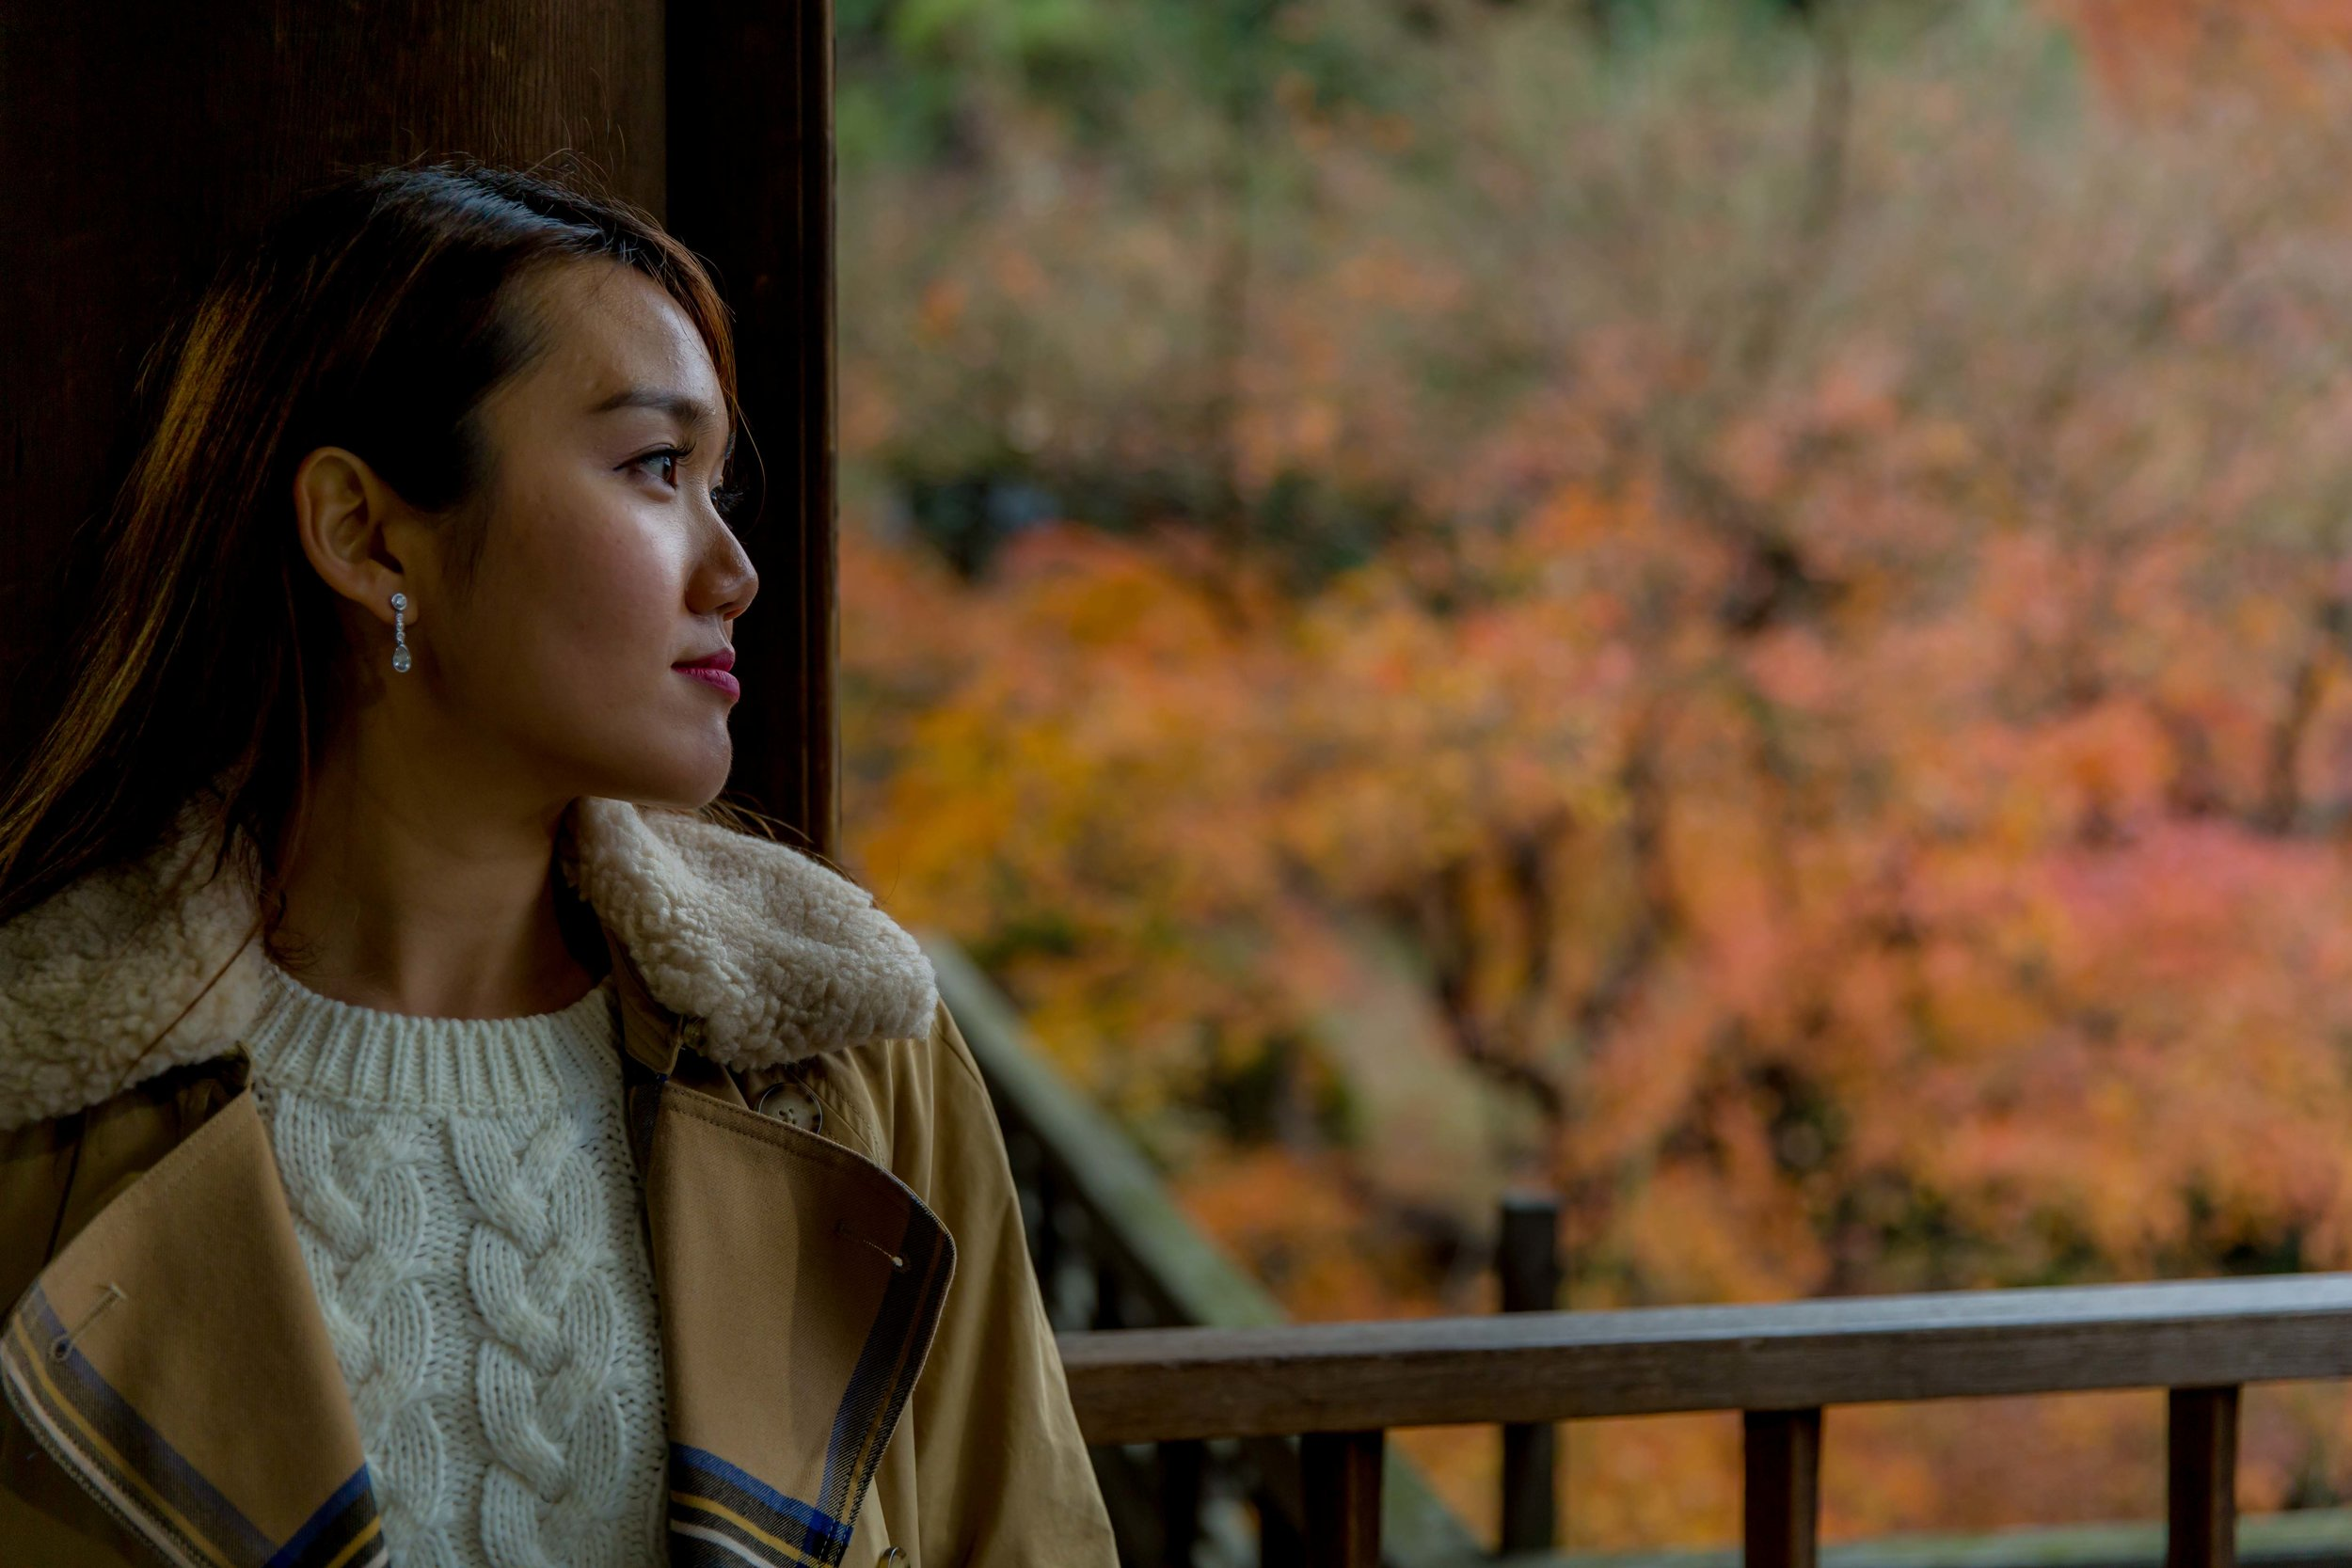 Photo shoot with autumn leaves, Tokyo